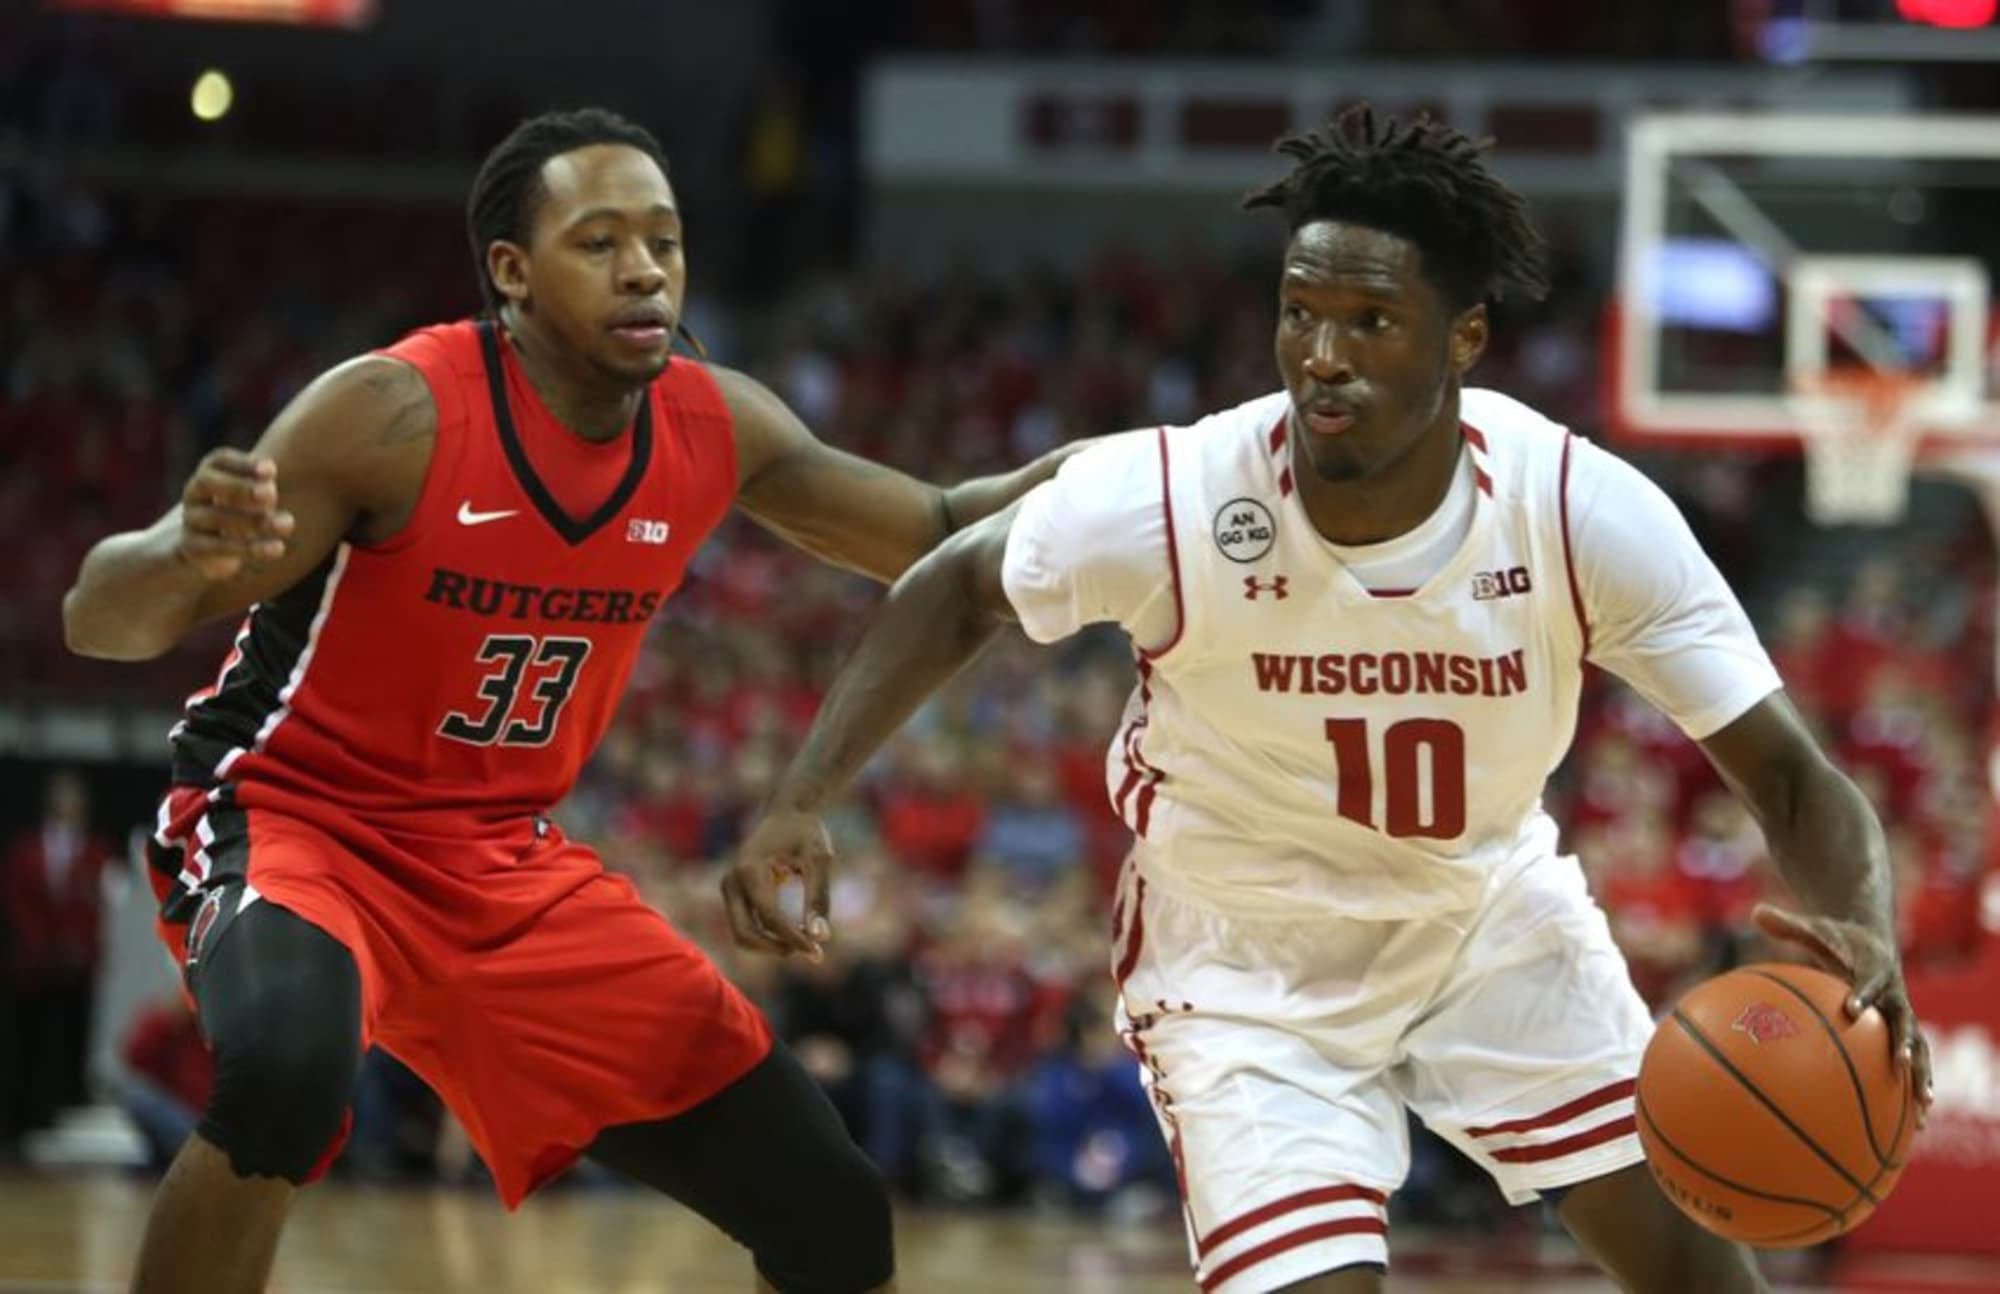 Badgers open up Big Ten play with 72-52 win over Rutgers